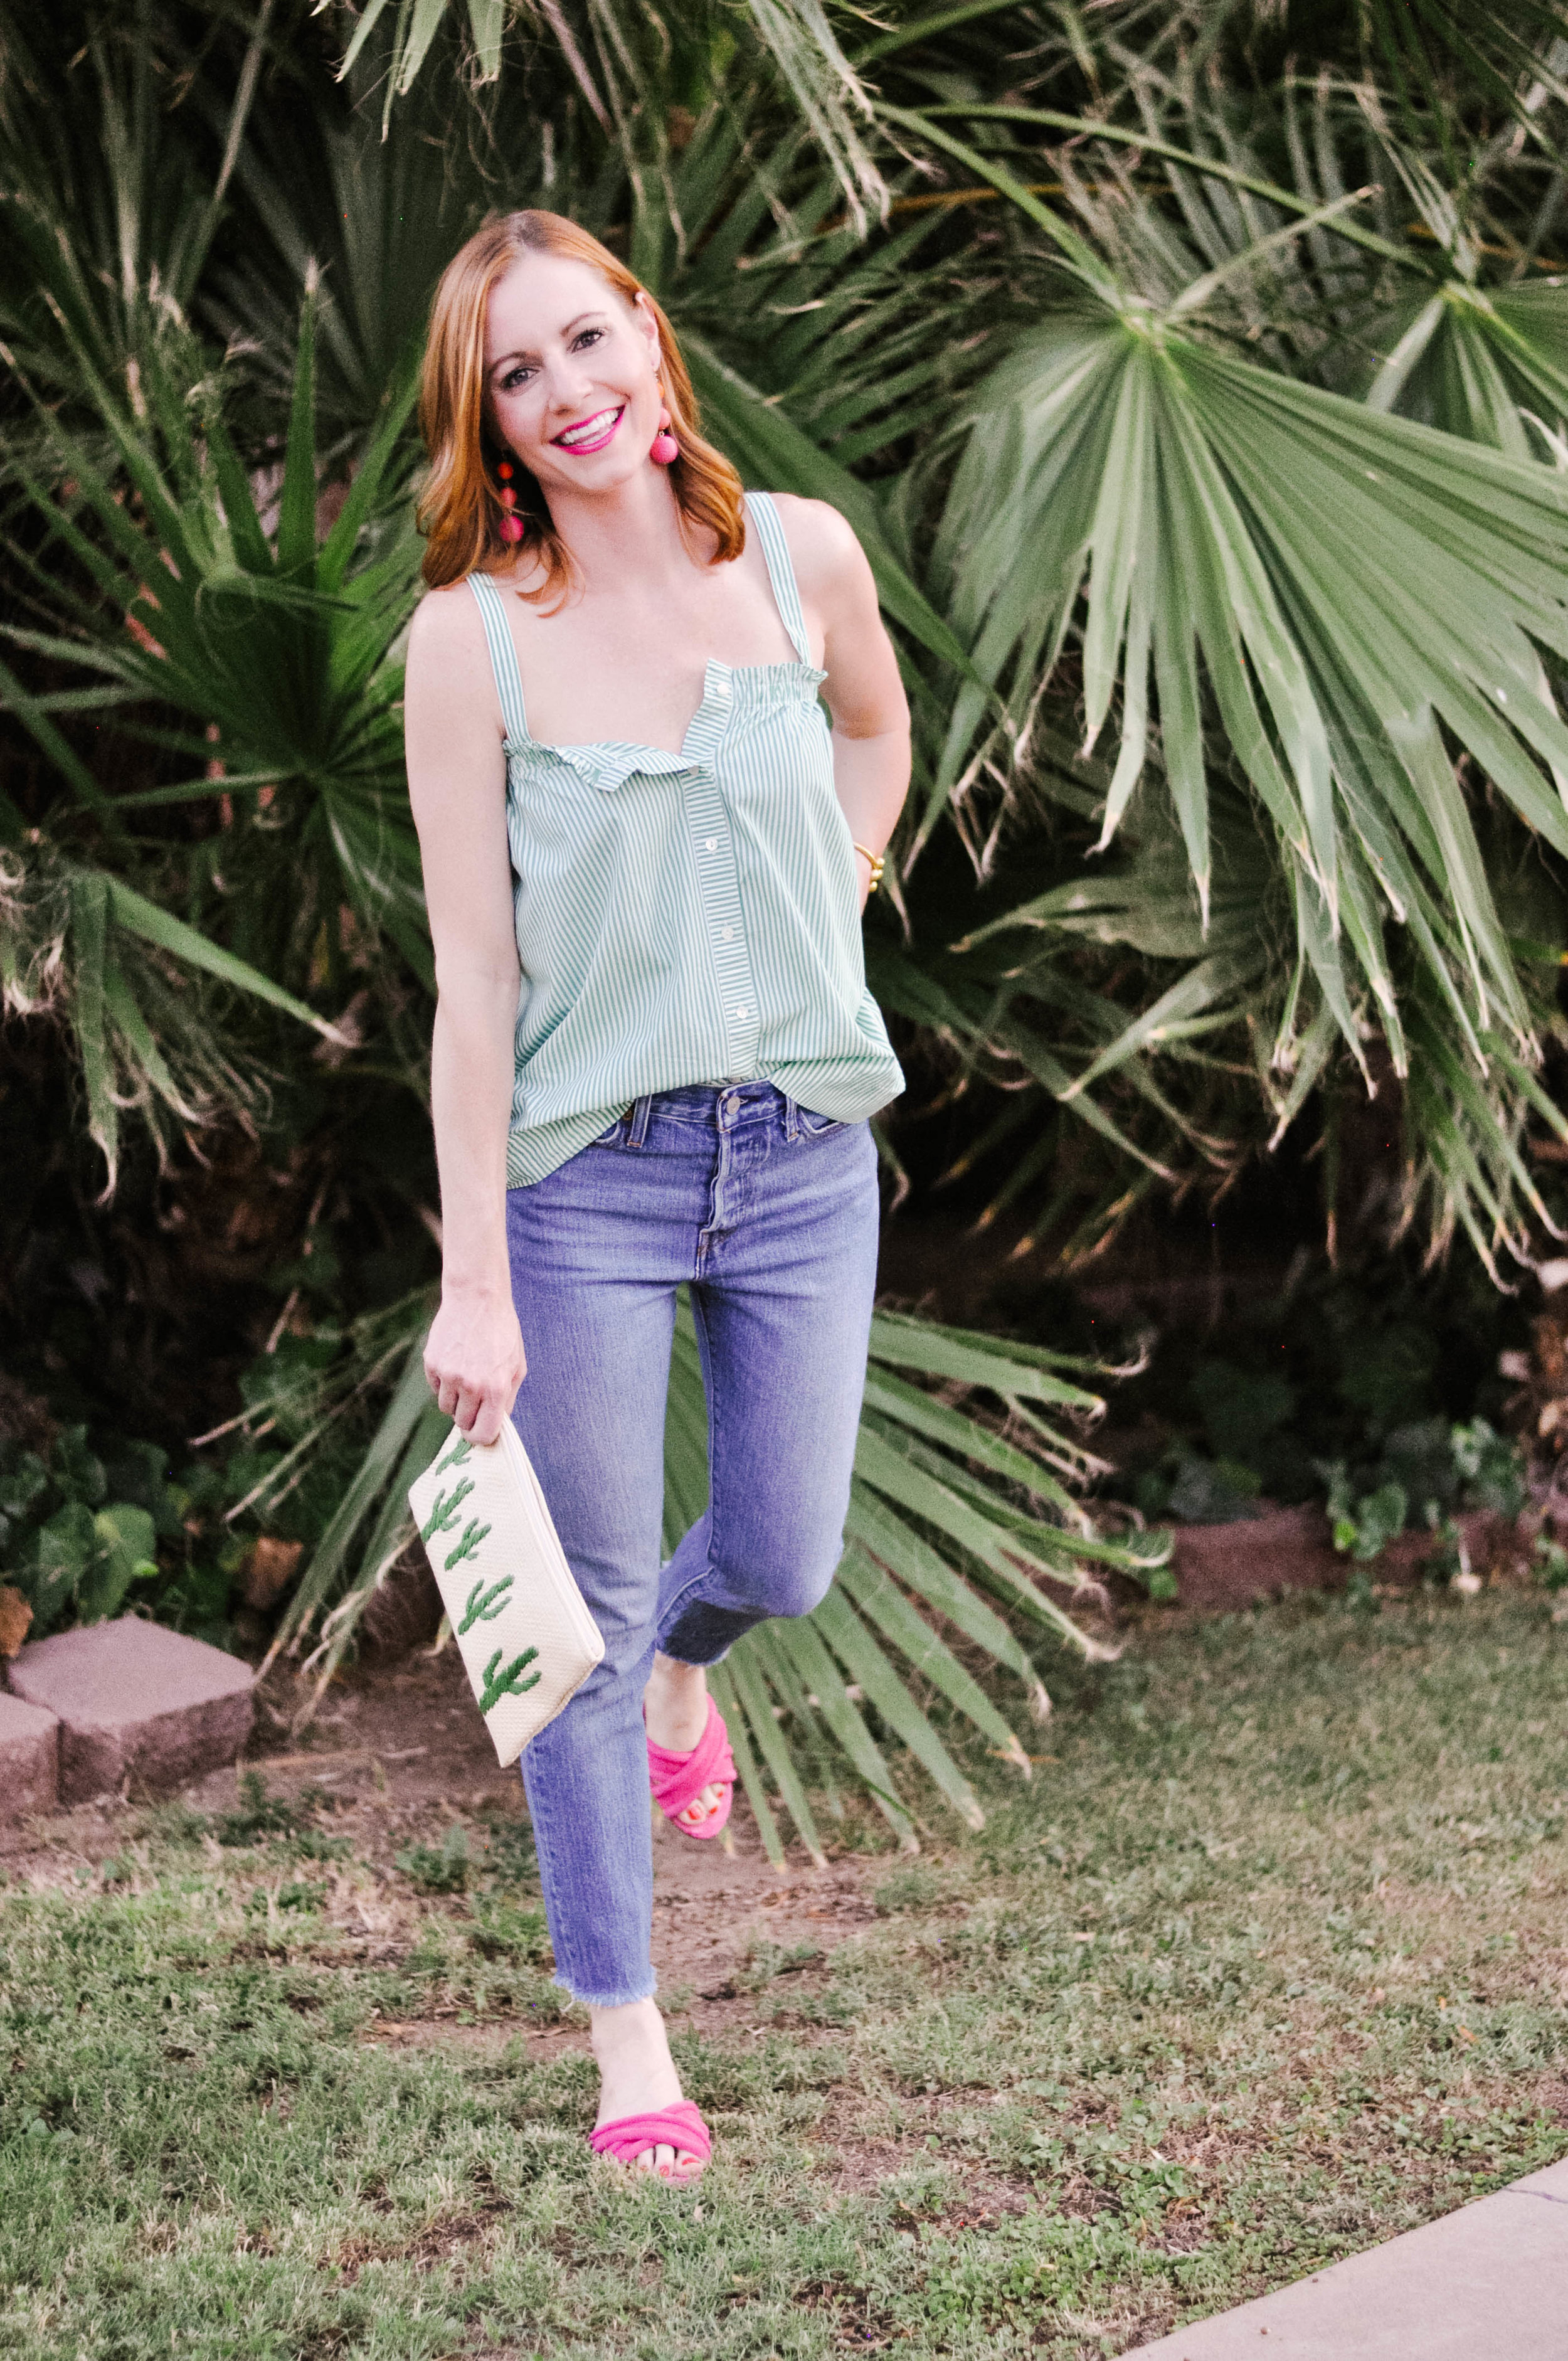 Woman Wearing Pink Sandals and Green Summer Top